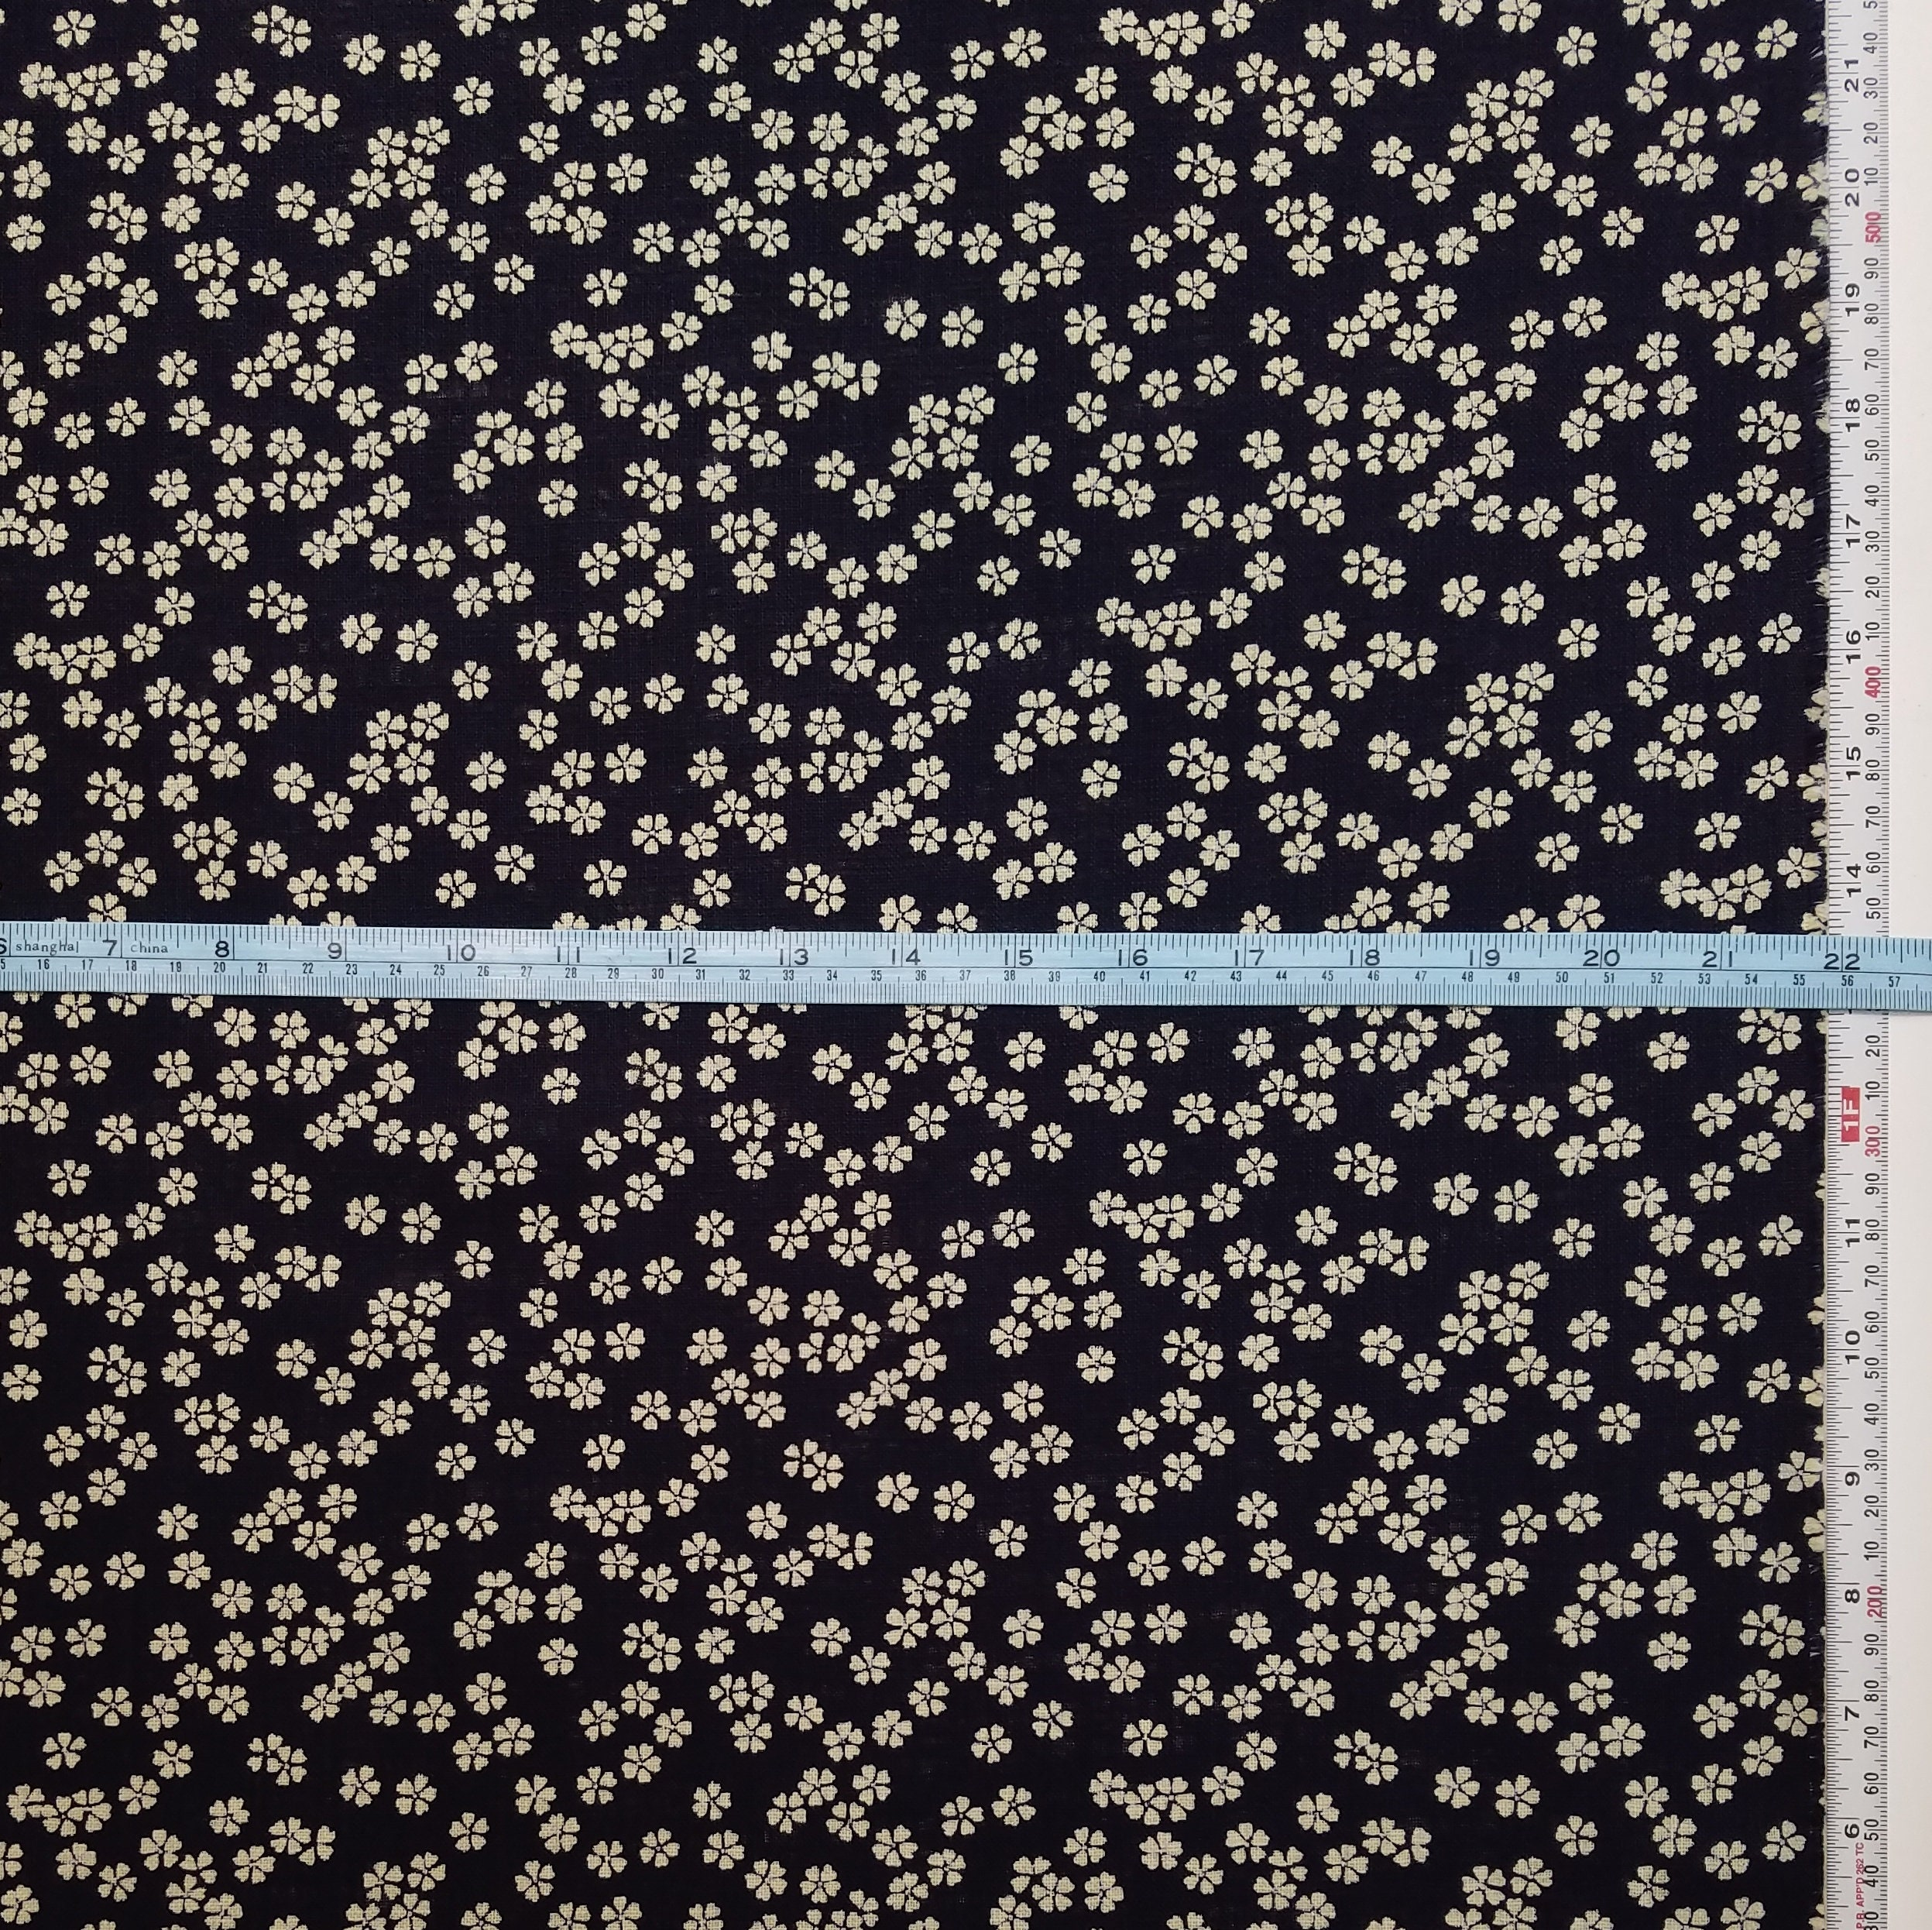 Fat Quarter Navy 7 #11 Canvas Japanese Fabric Sevenberry Solid Color